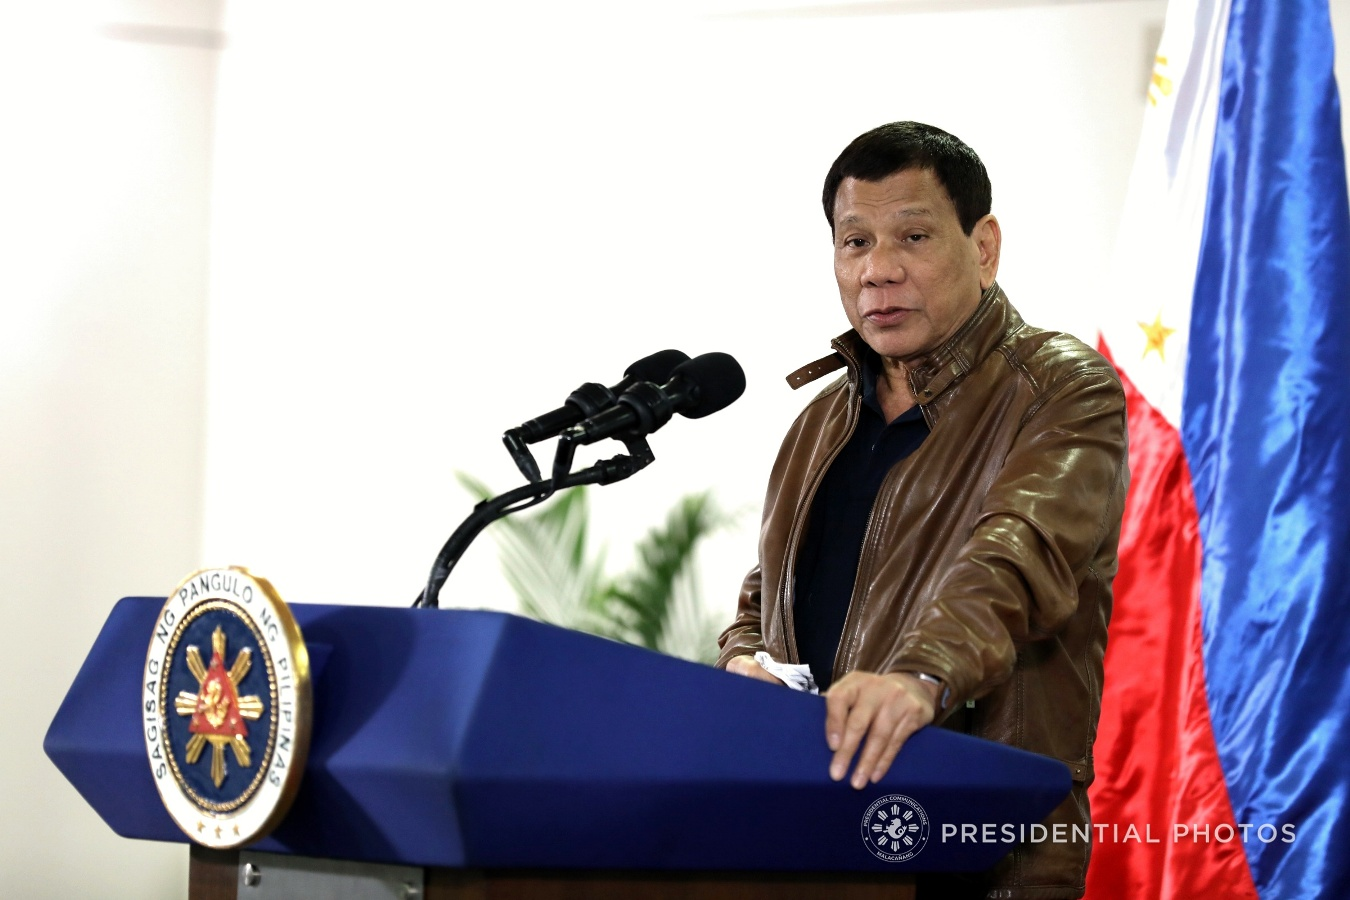 President Rodrigo Roa Duterte, in his speech during his arrival at the Francisco Bangoy International Airport in Davao City on January 26, 2018, announces that the heads of state and government from members countries of the Association of Southeast Asian Nations (ASEAN) as well as India have reaffirmed their commitment to work together in fighting terrorism. SIMEON CELI JR./PRESIDENTIAL PHOTO